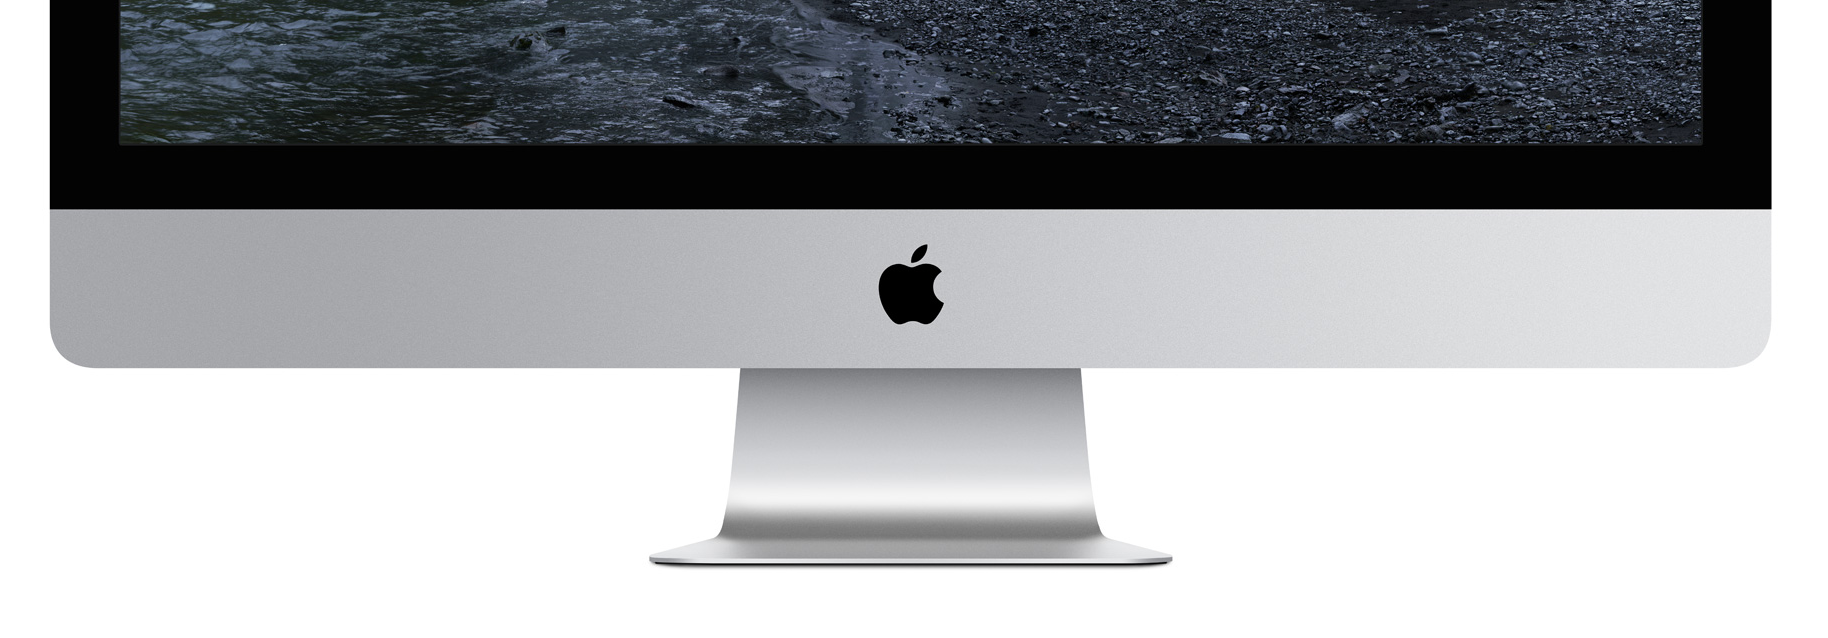 10 Wallpapers 5K Ultra HD 5120x2880 for your iMac Retina My HD 1828x638